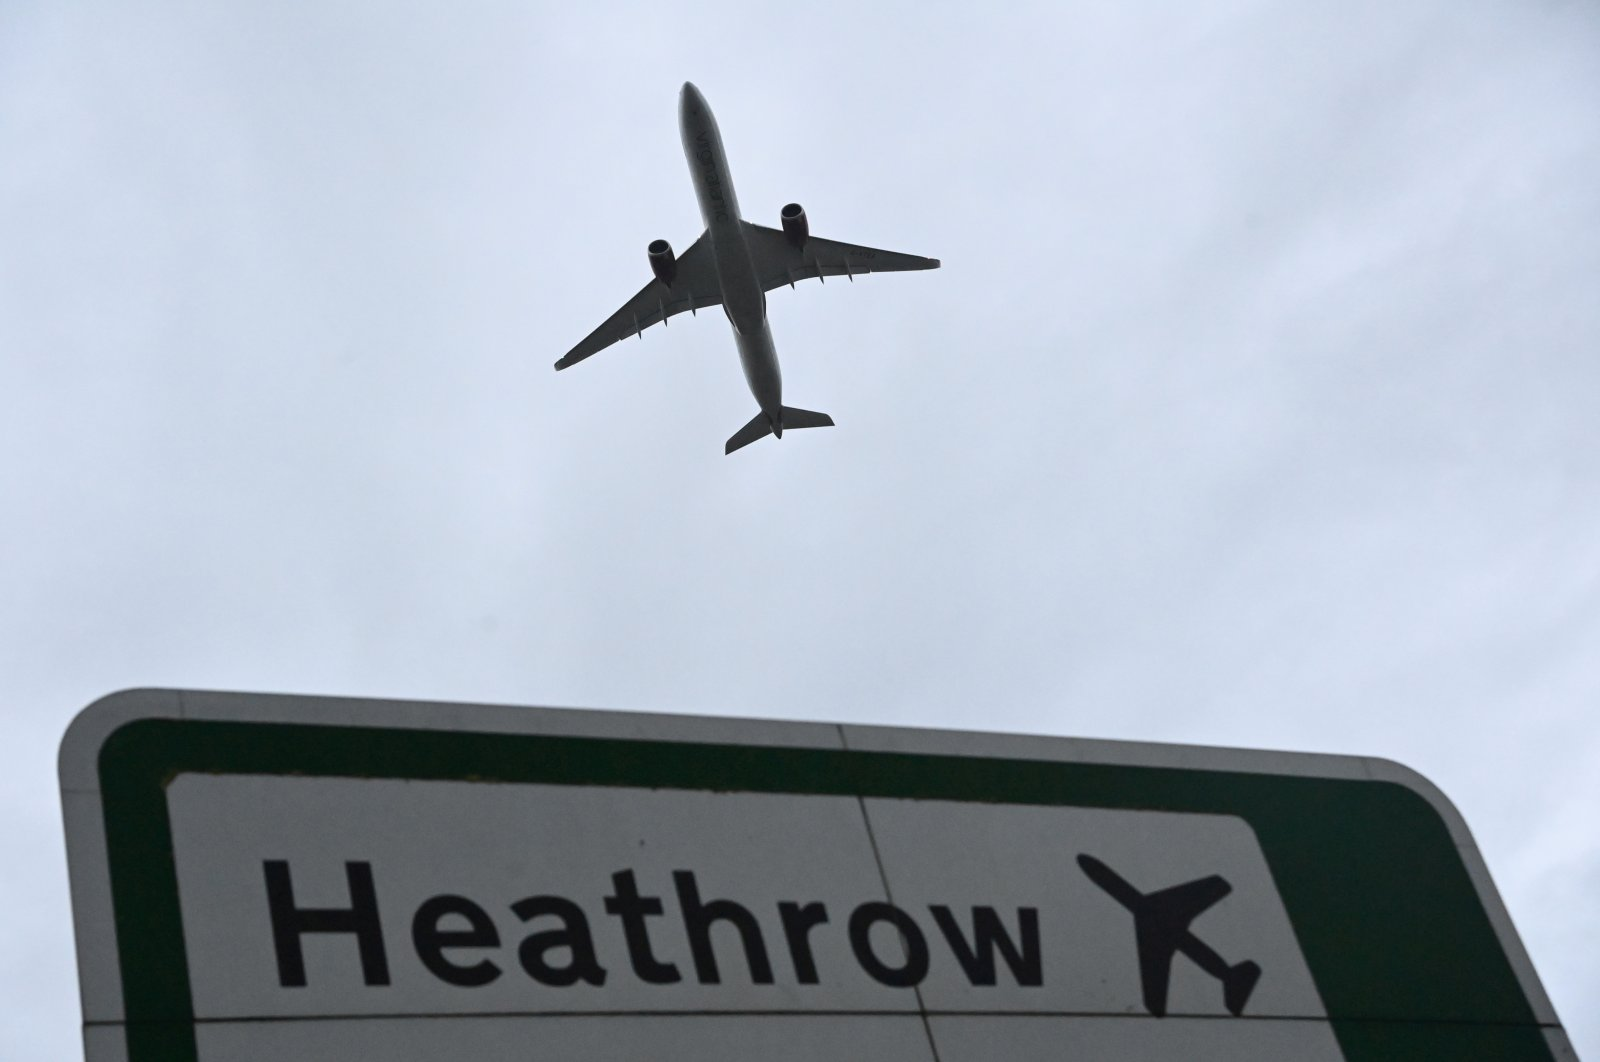 An aircraft takes off at Heathrow Airport amid the spread of the COVID-19 pandemic in London, Britain, Feb. 4, 2021. (Reuters Photo)